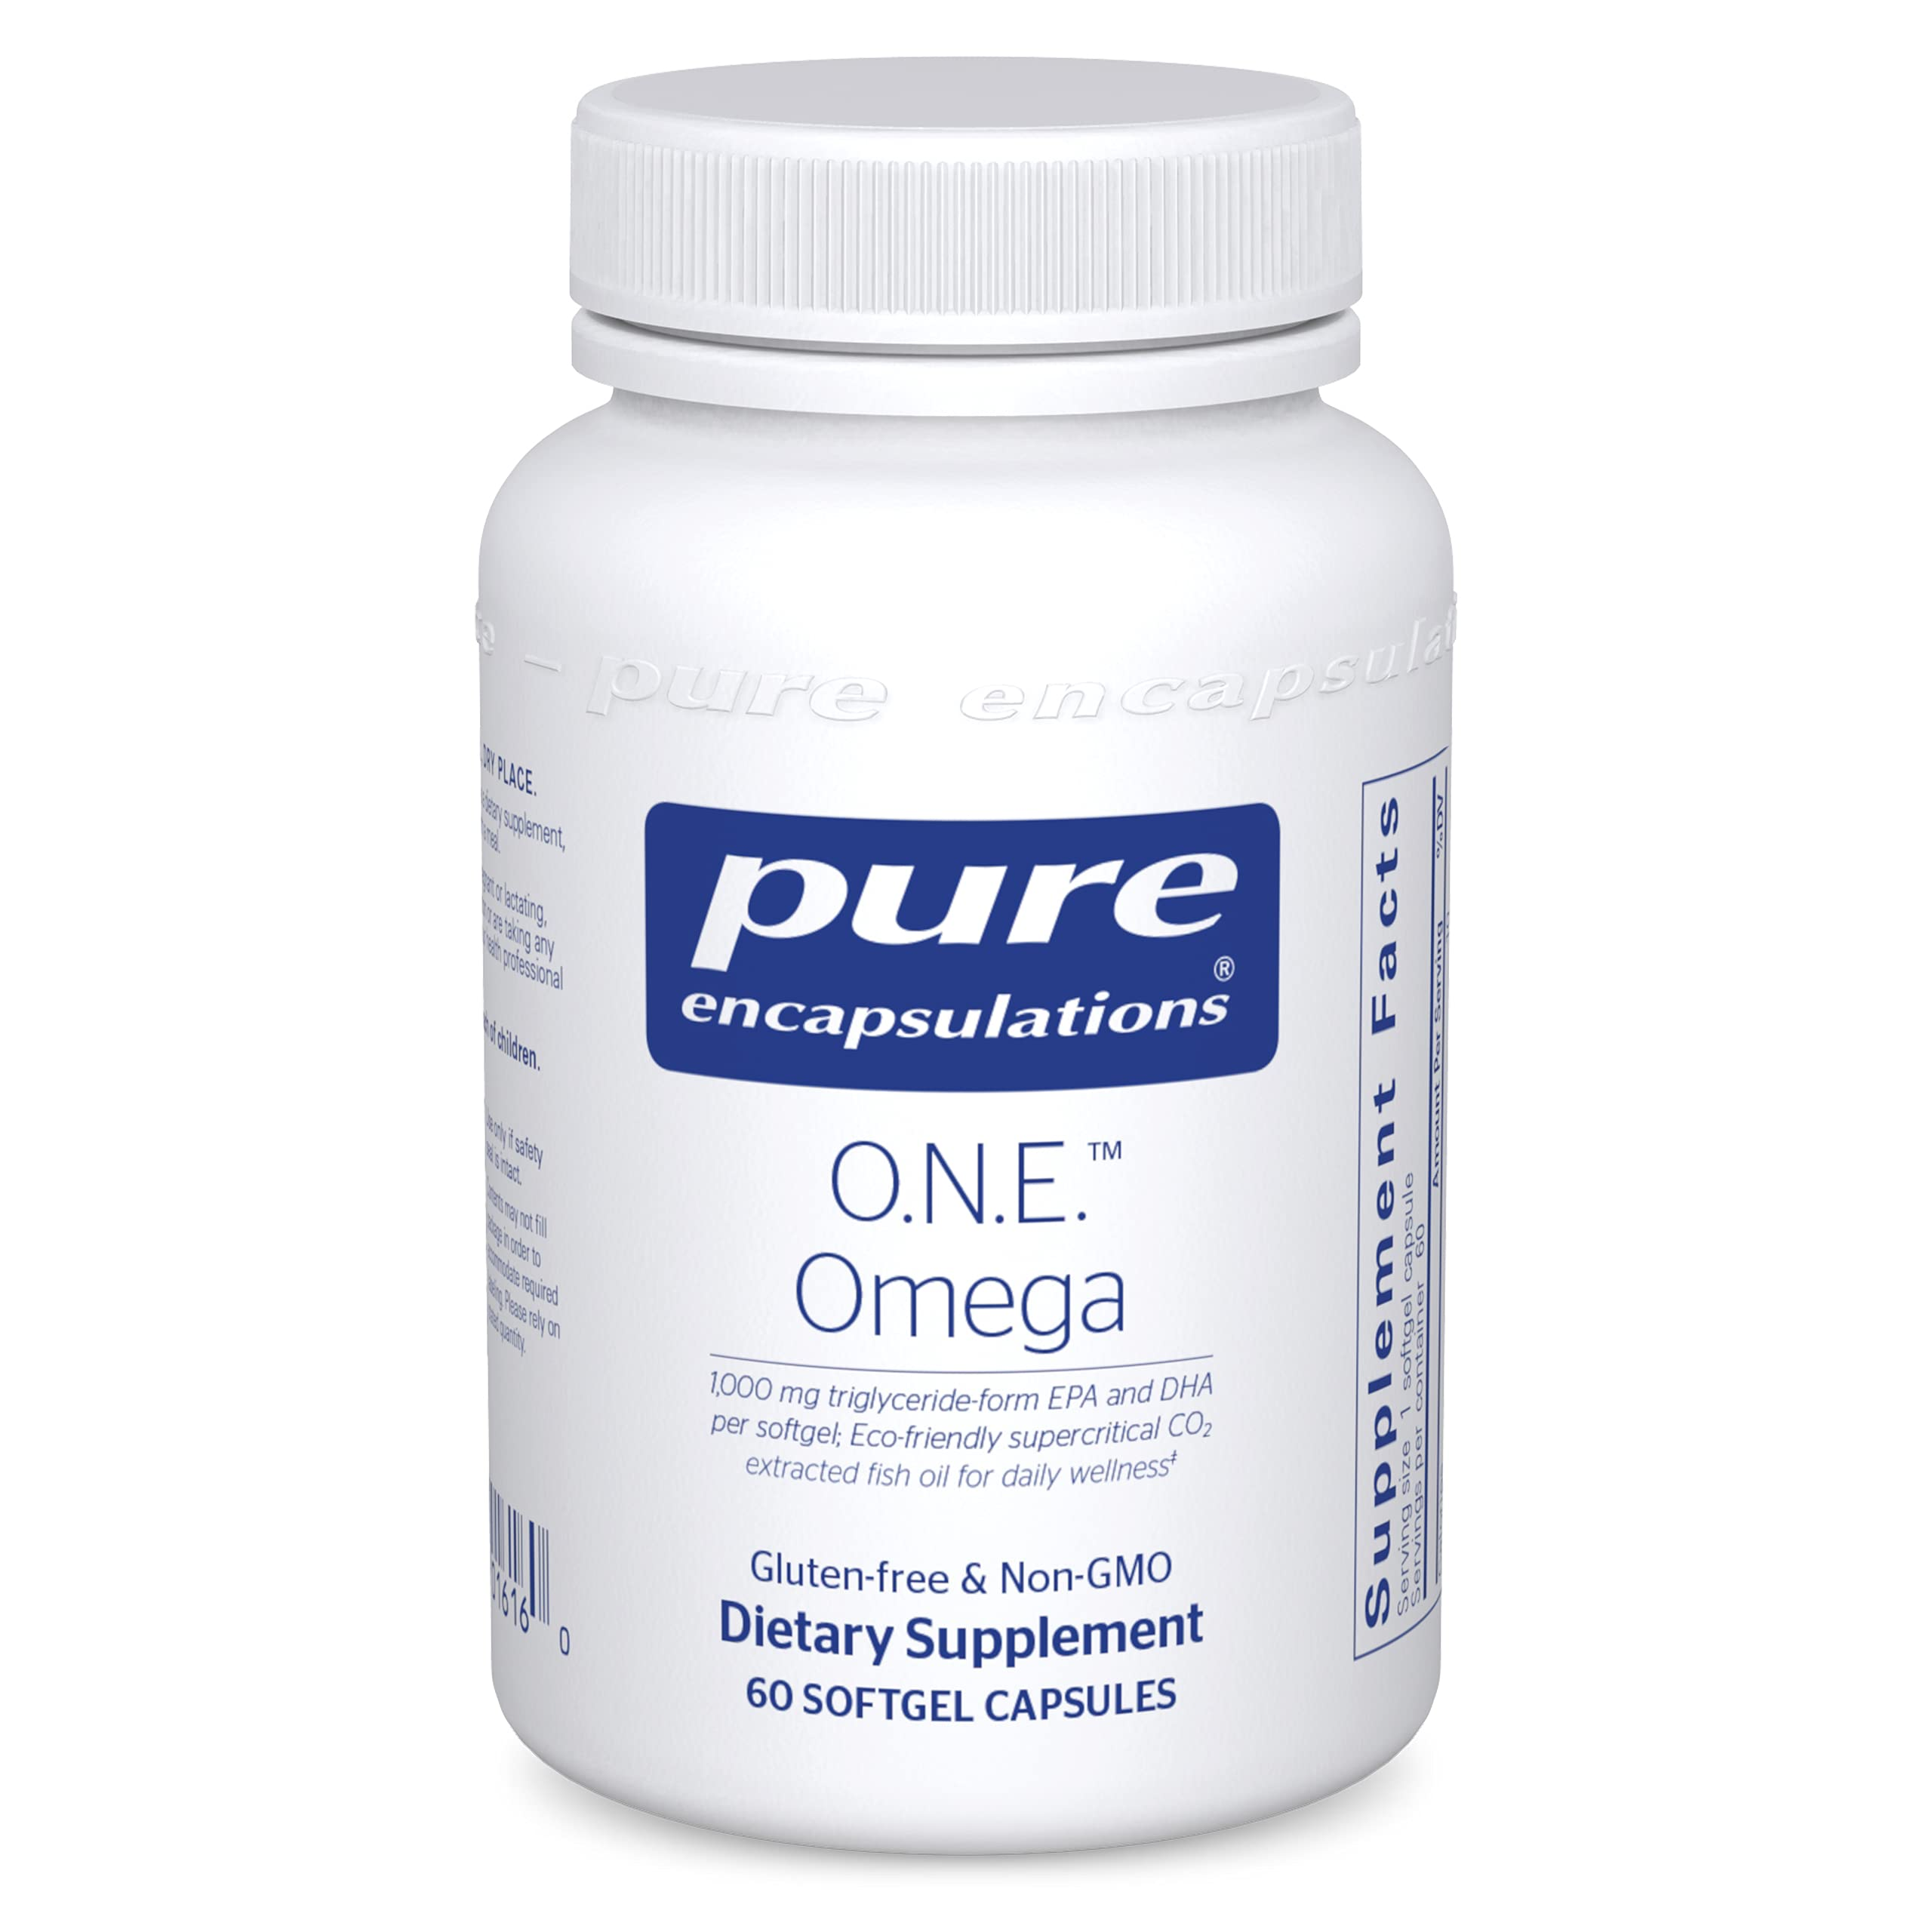 Pure Encapsulations O.N.E. Omega   Fish Oil Supplement for Heart Health, Joints, Skin, Eyes, and Cognition*   60 Softgel Capsules